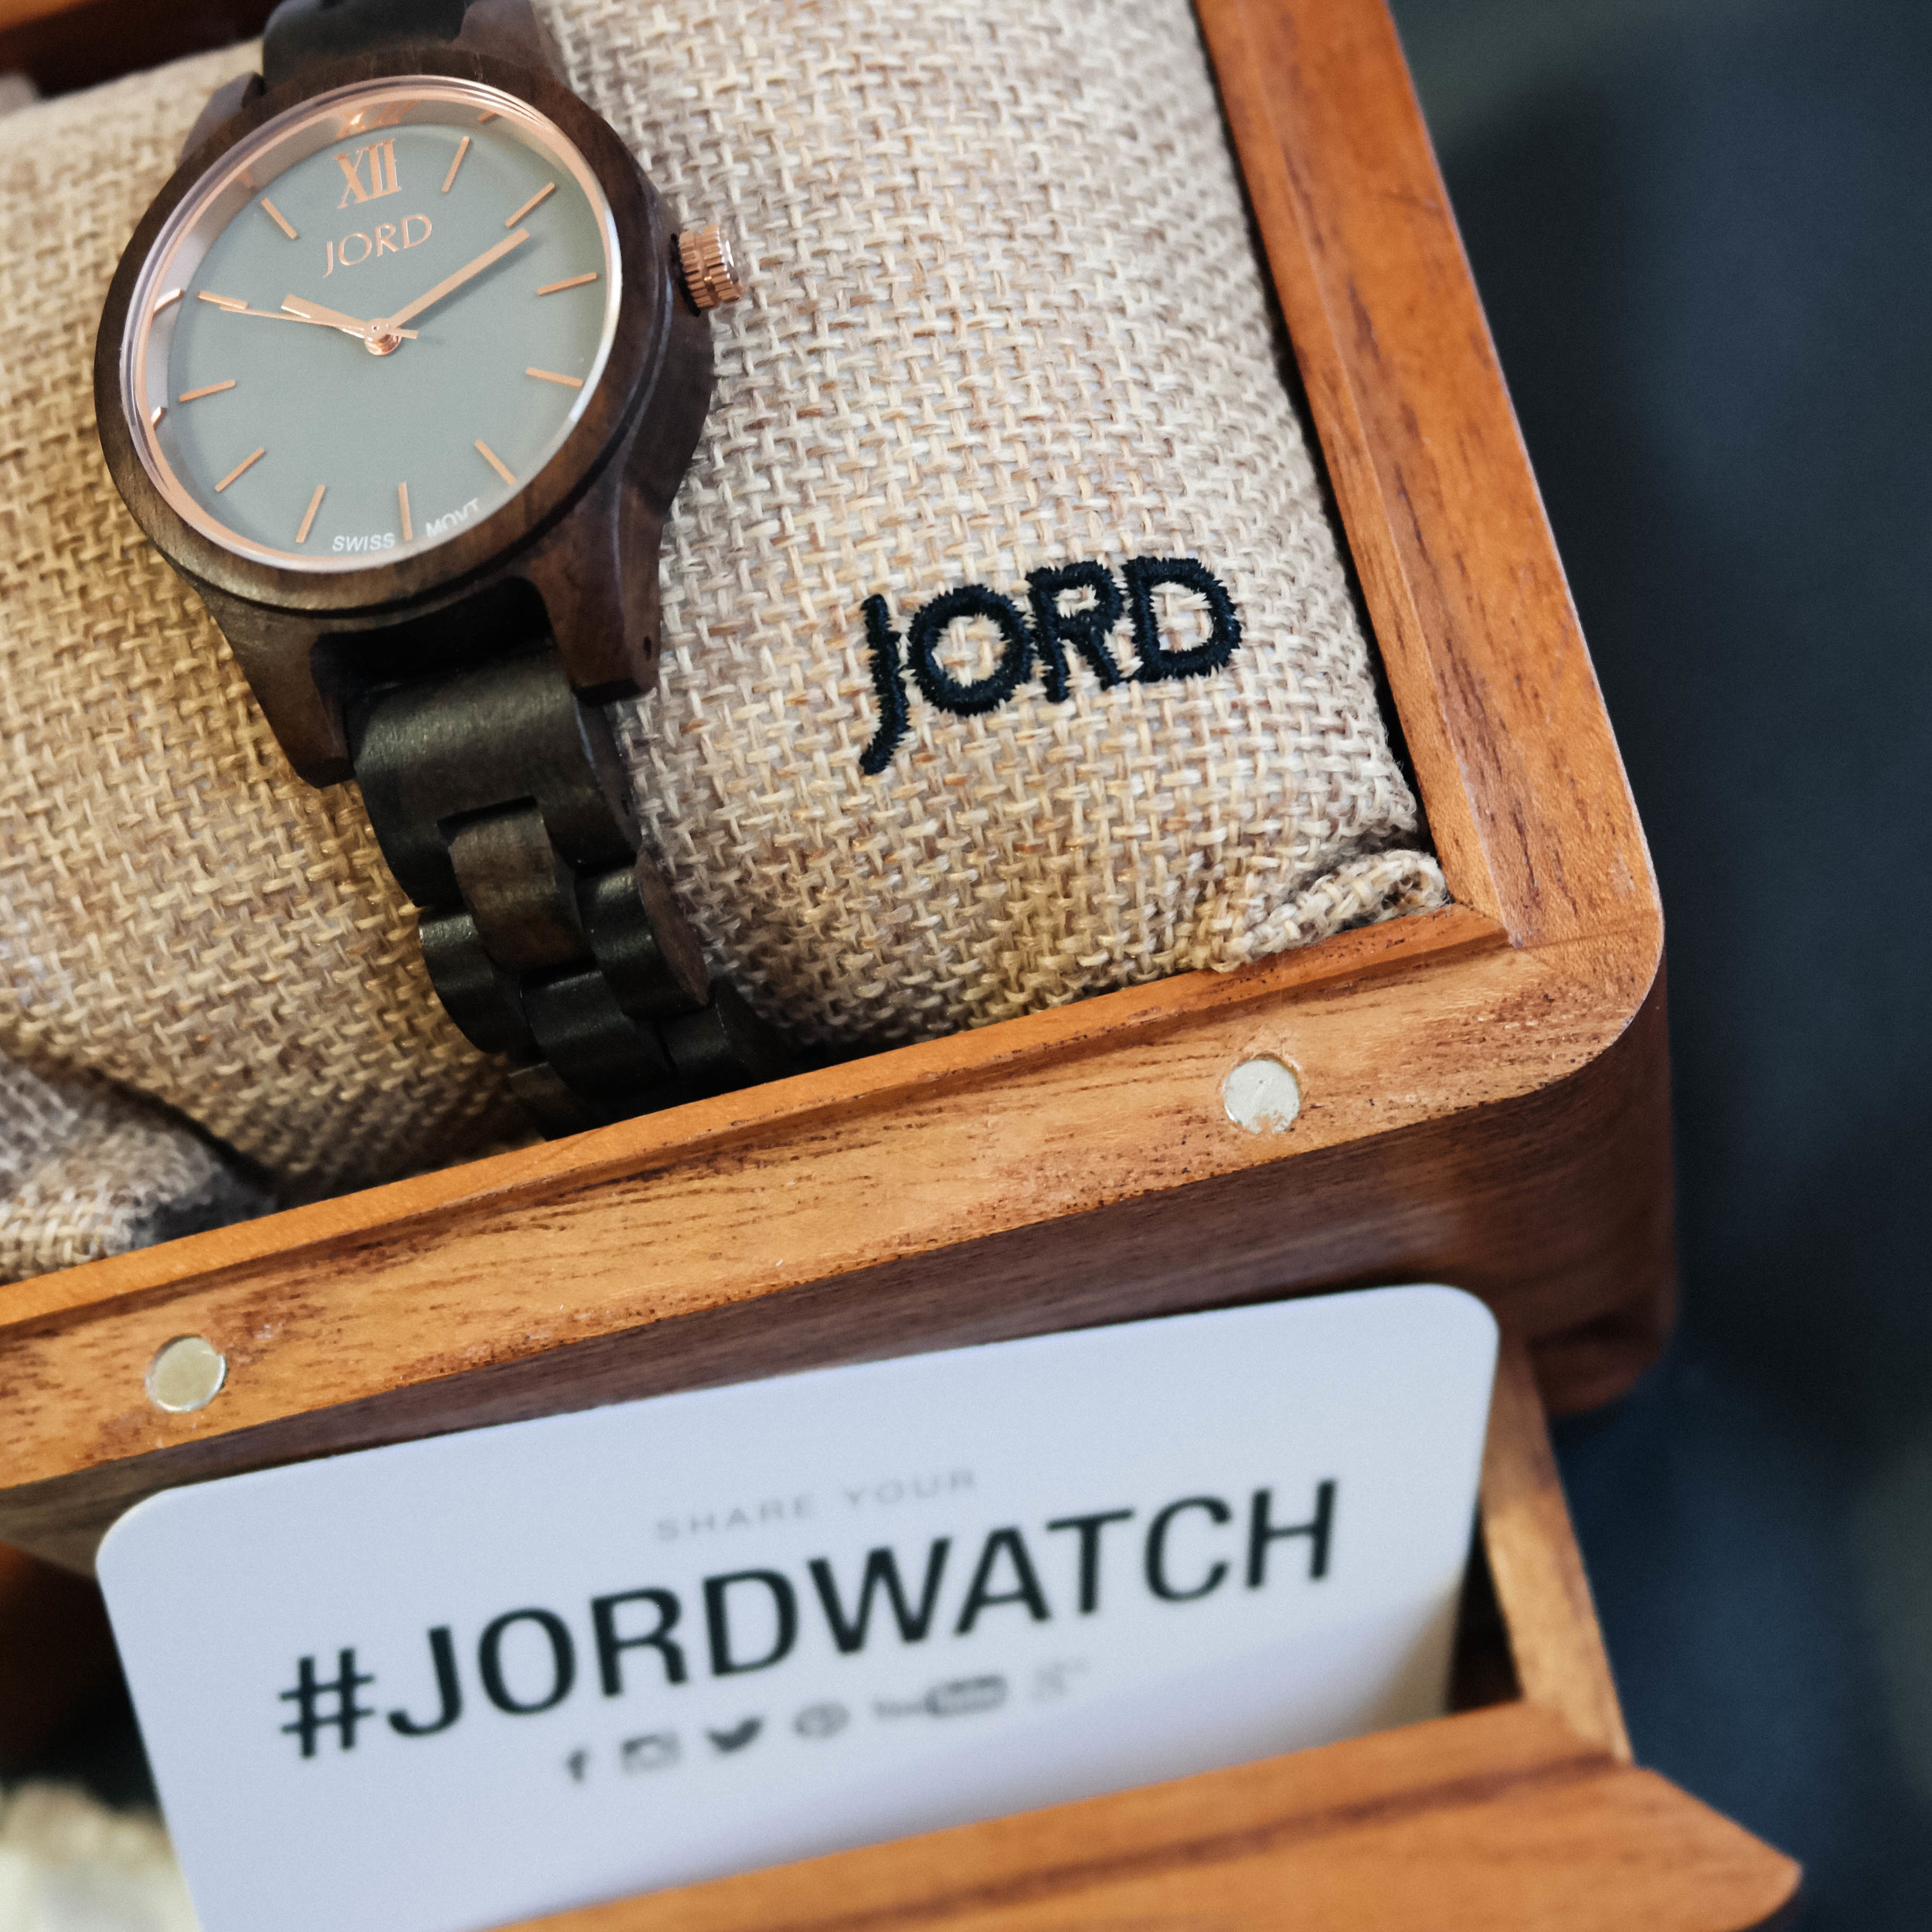 Sponsored by Jord Watches